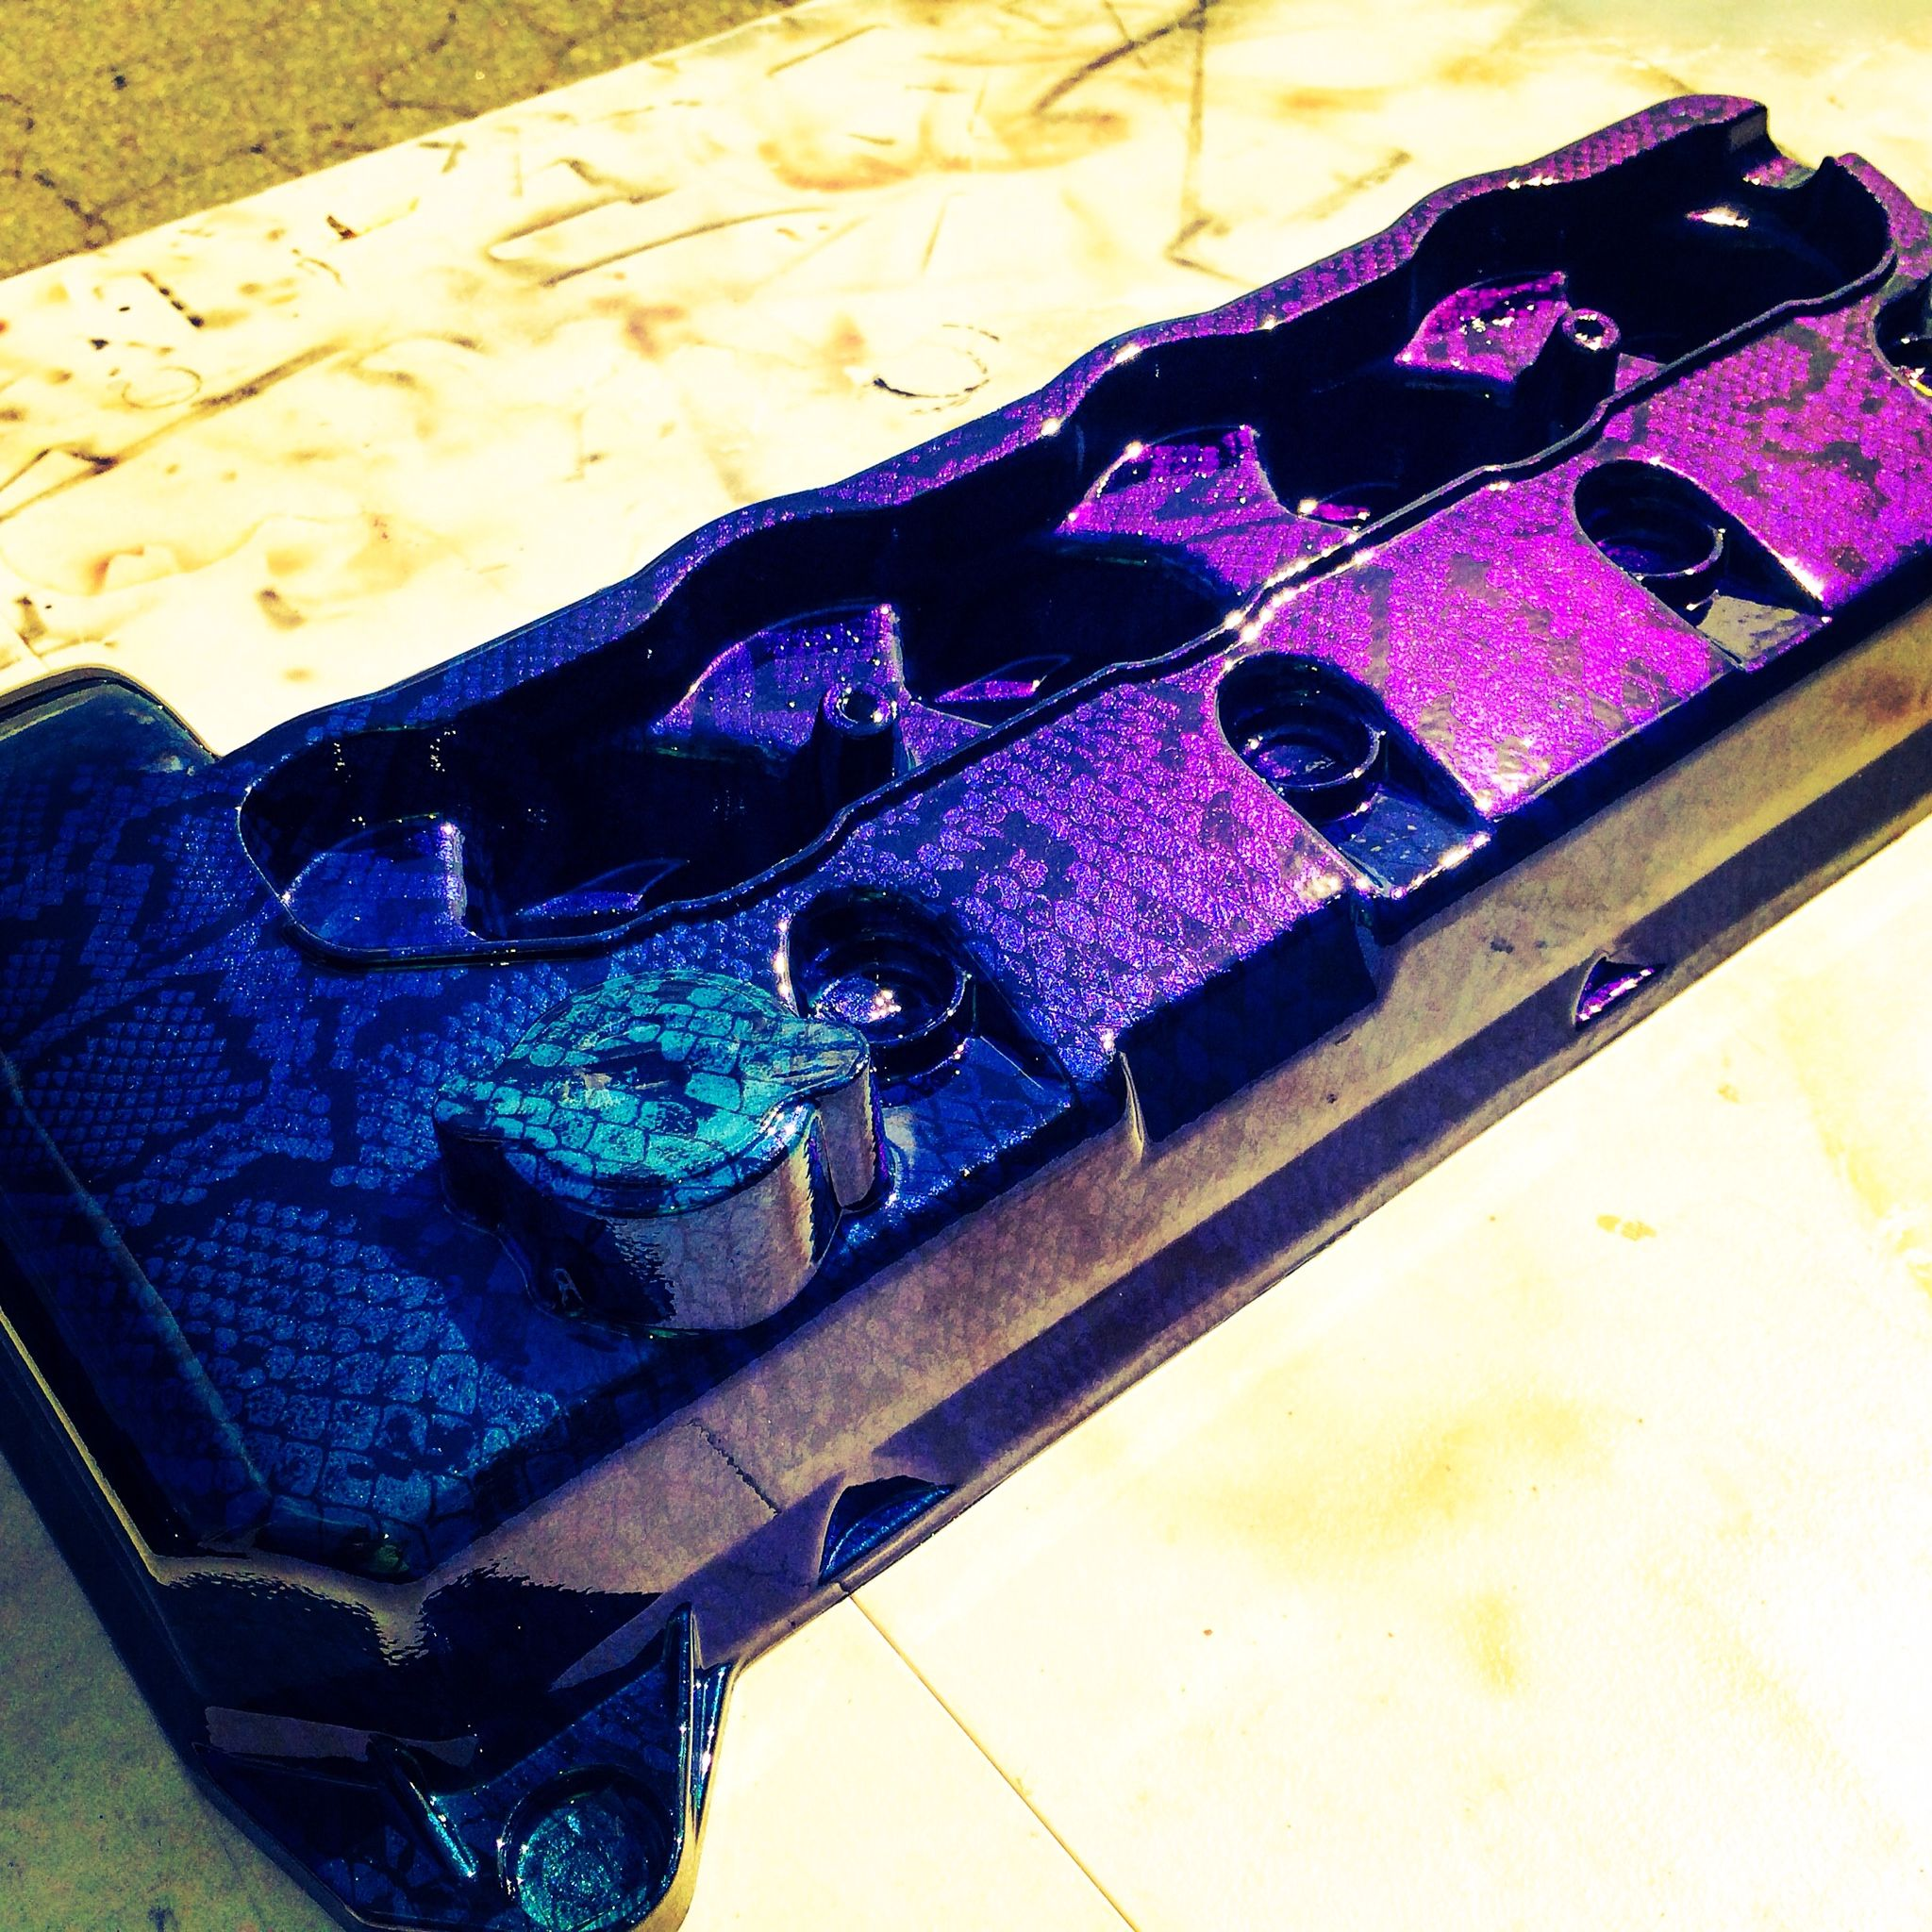 valve cover hydro dipped